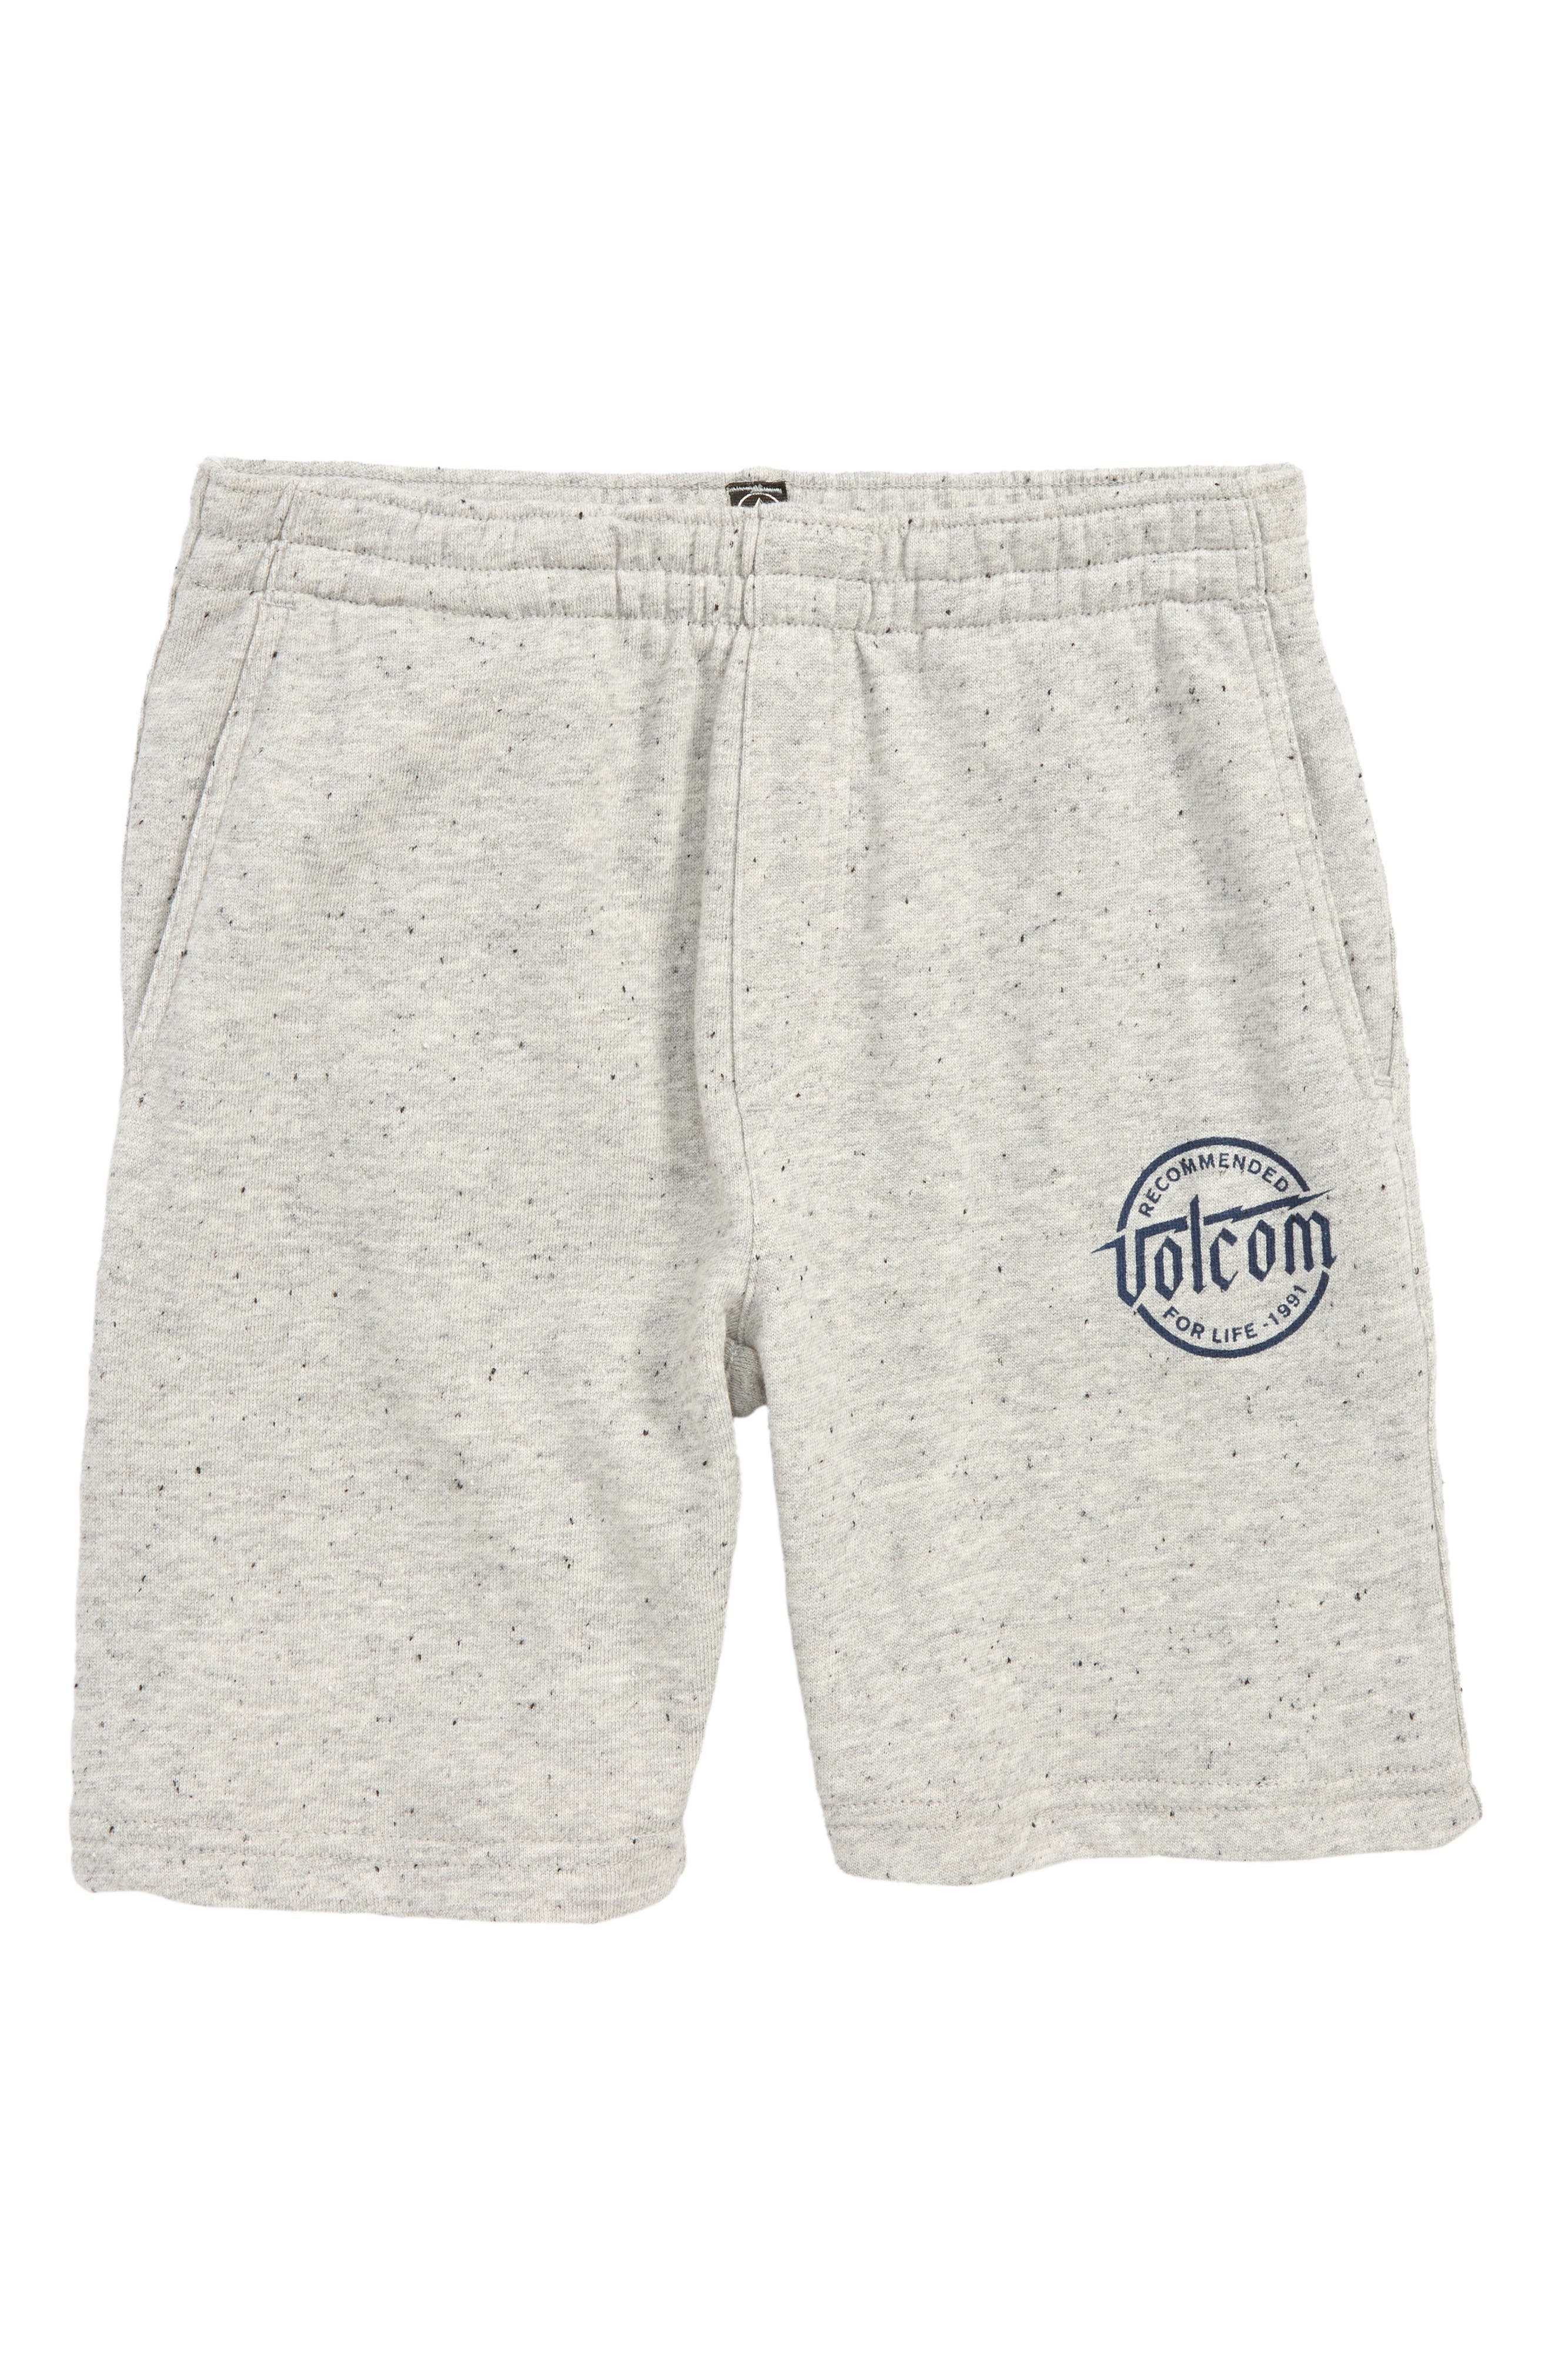 Downtime Sweat Shorts,                         Main,                         color, GREY